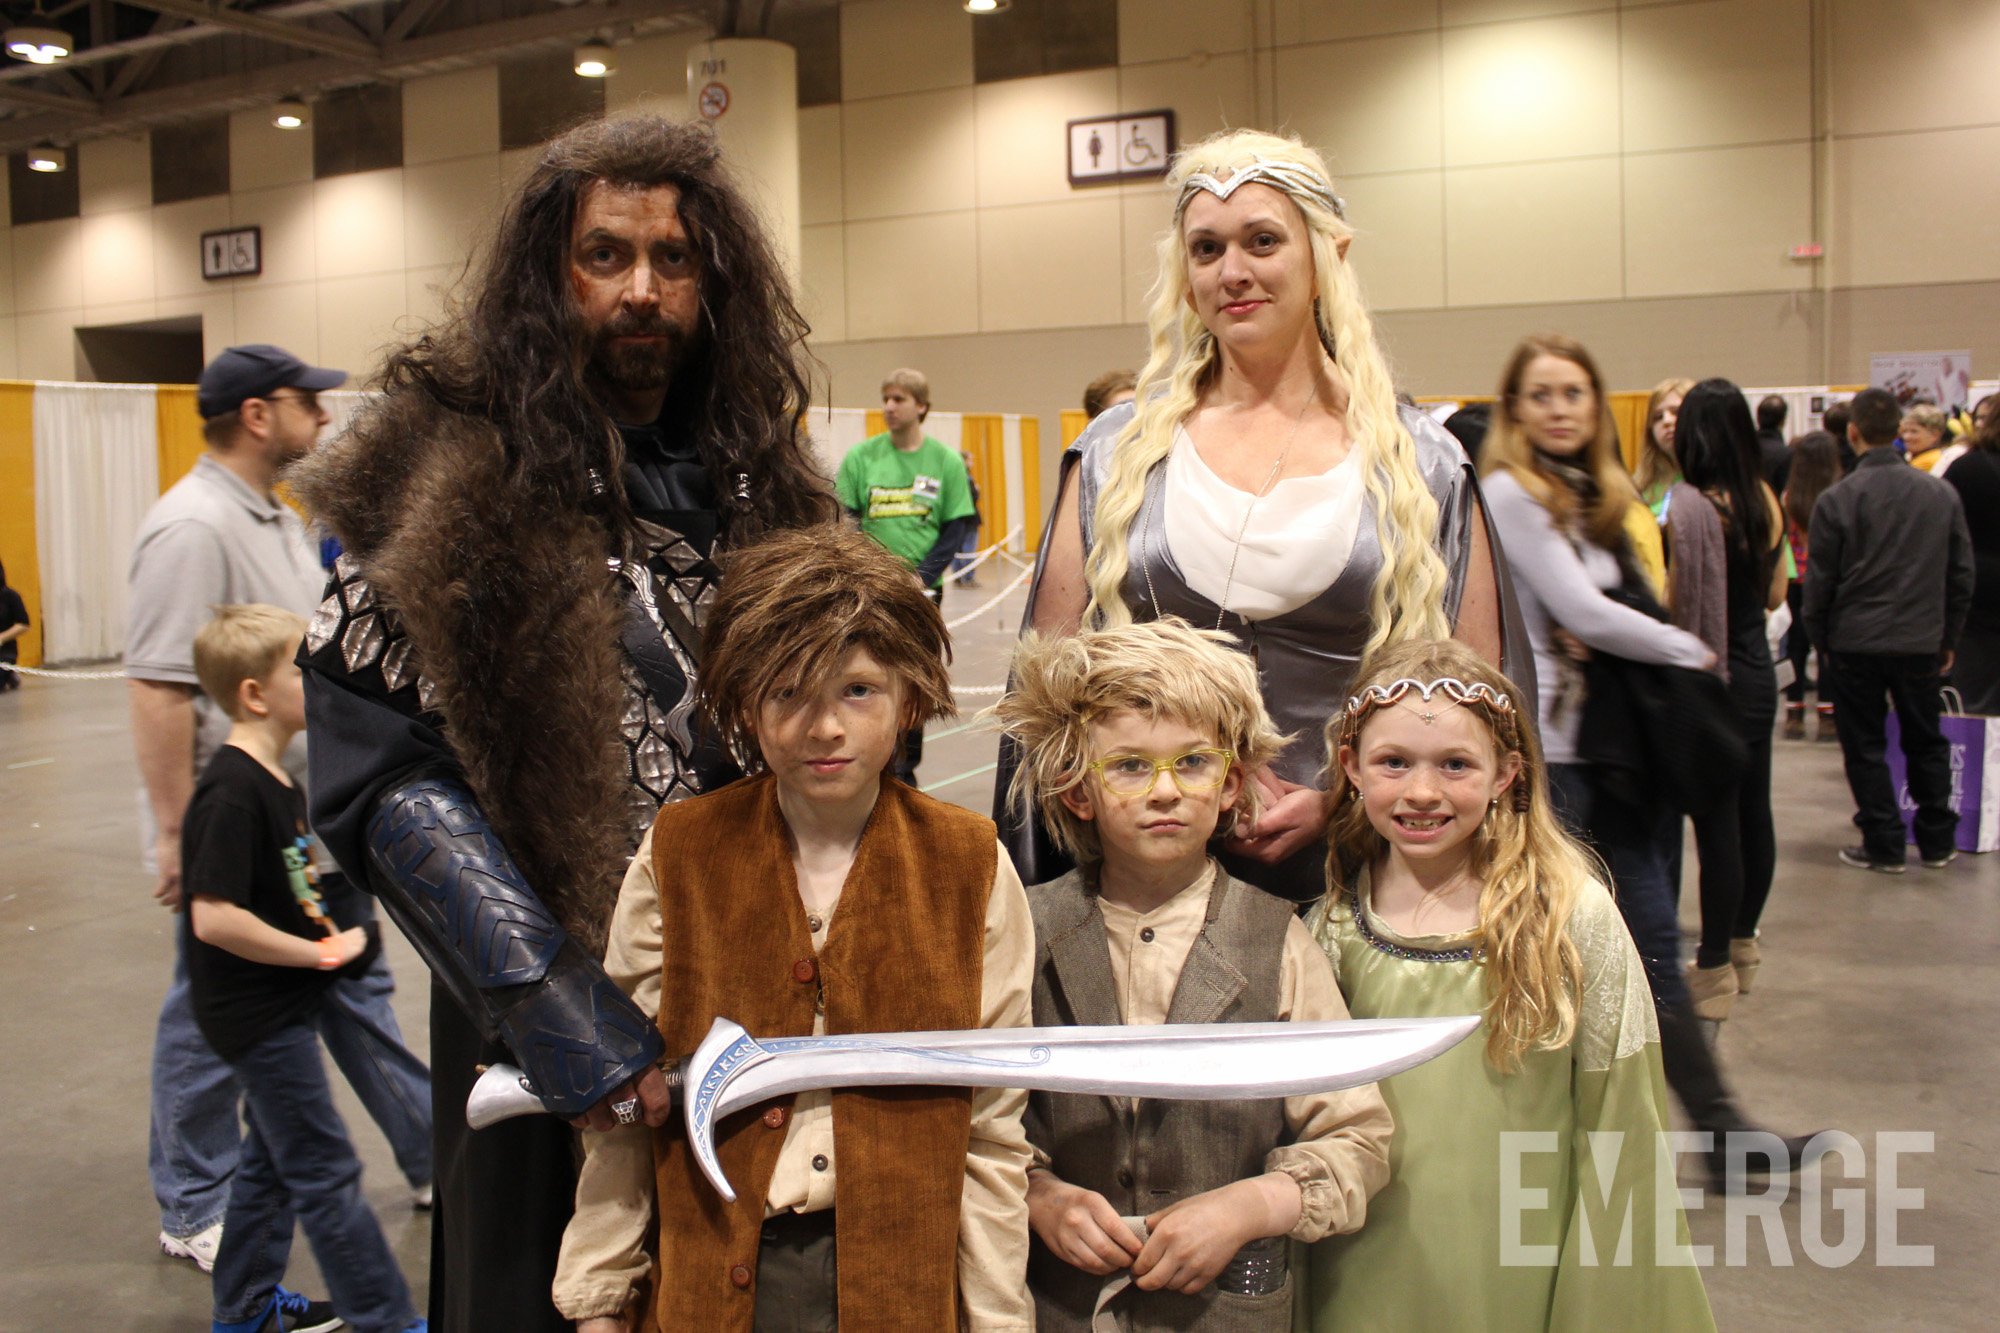 The family that cosplays together, stays together. Easily the best family at Comicon portraying characters from The Hobbit